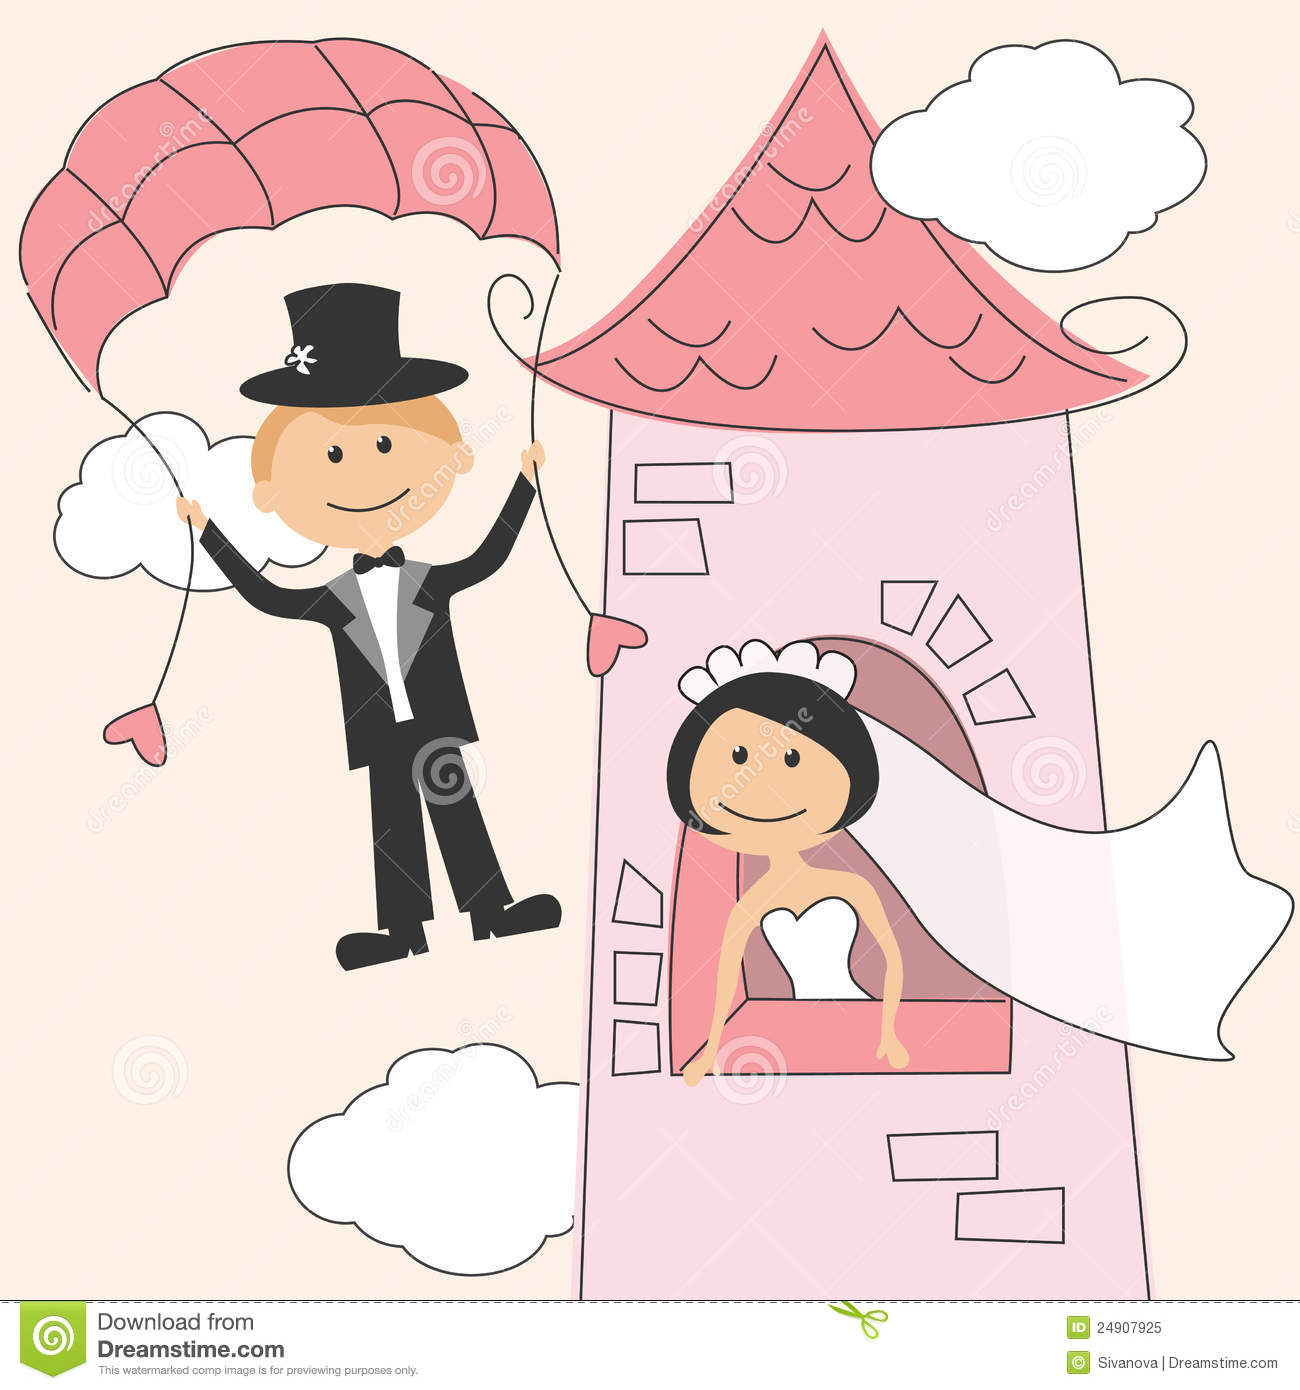 funny wedding clipart free - photo #44